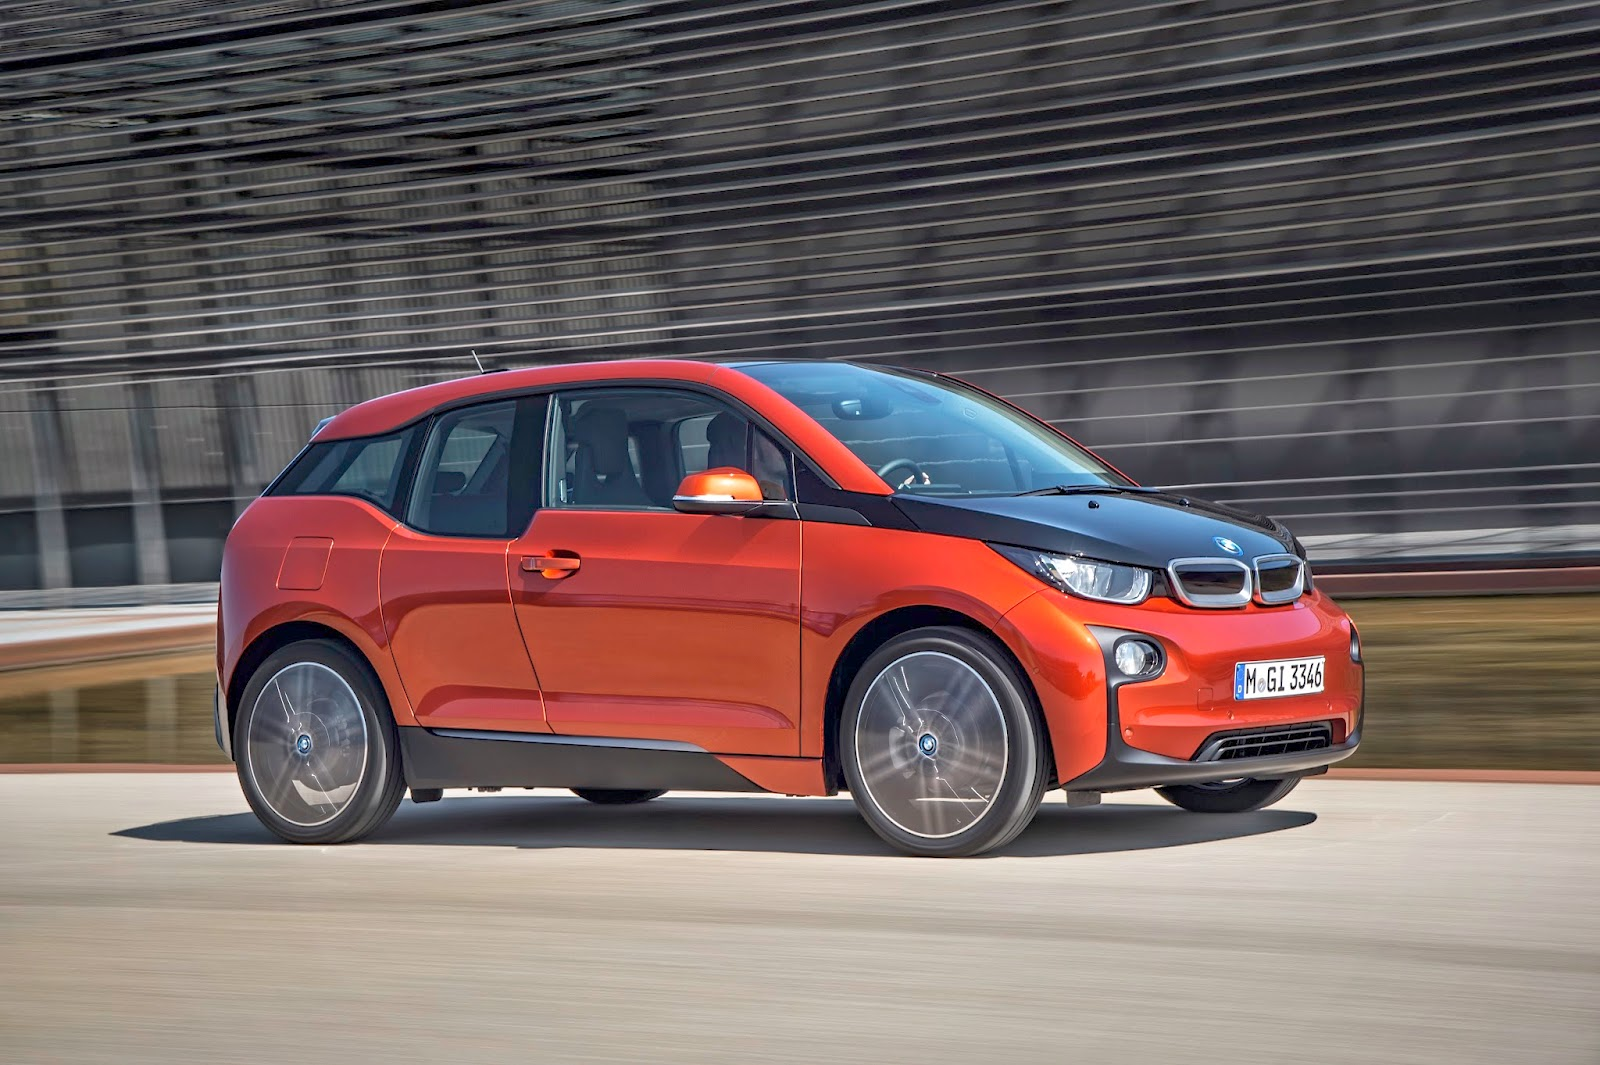 BMW i3 - hatchback electric car